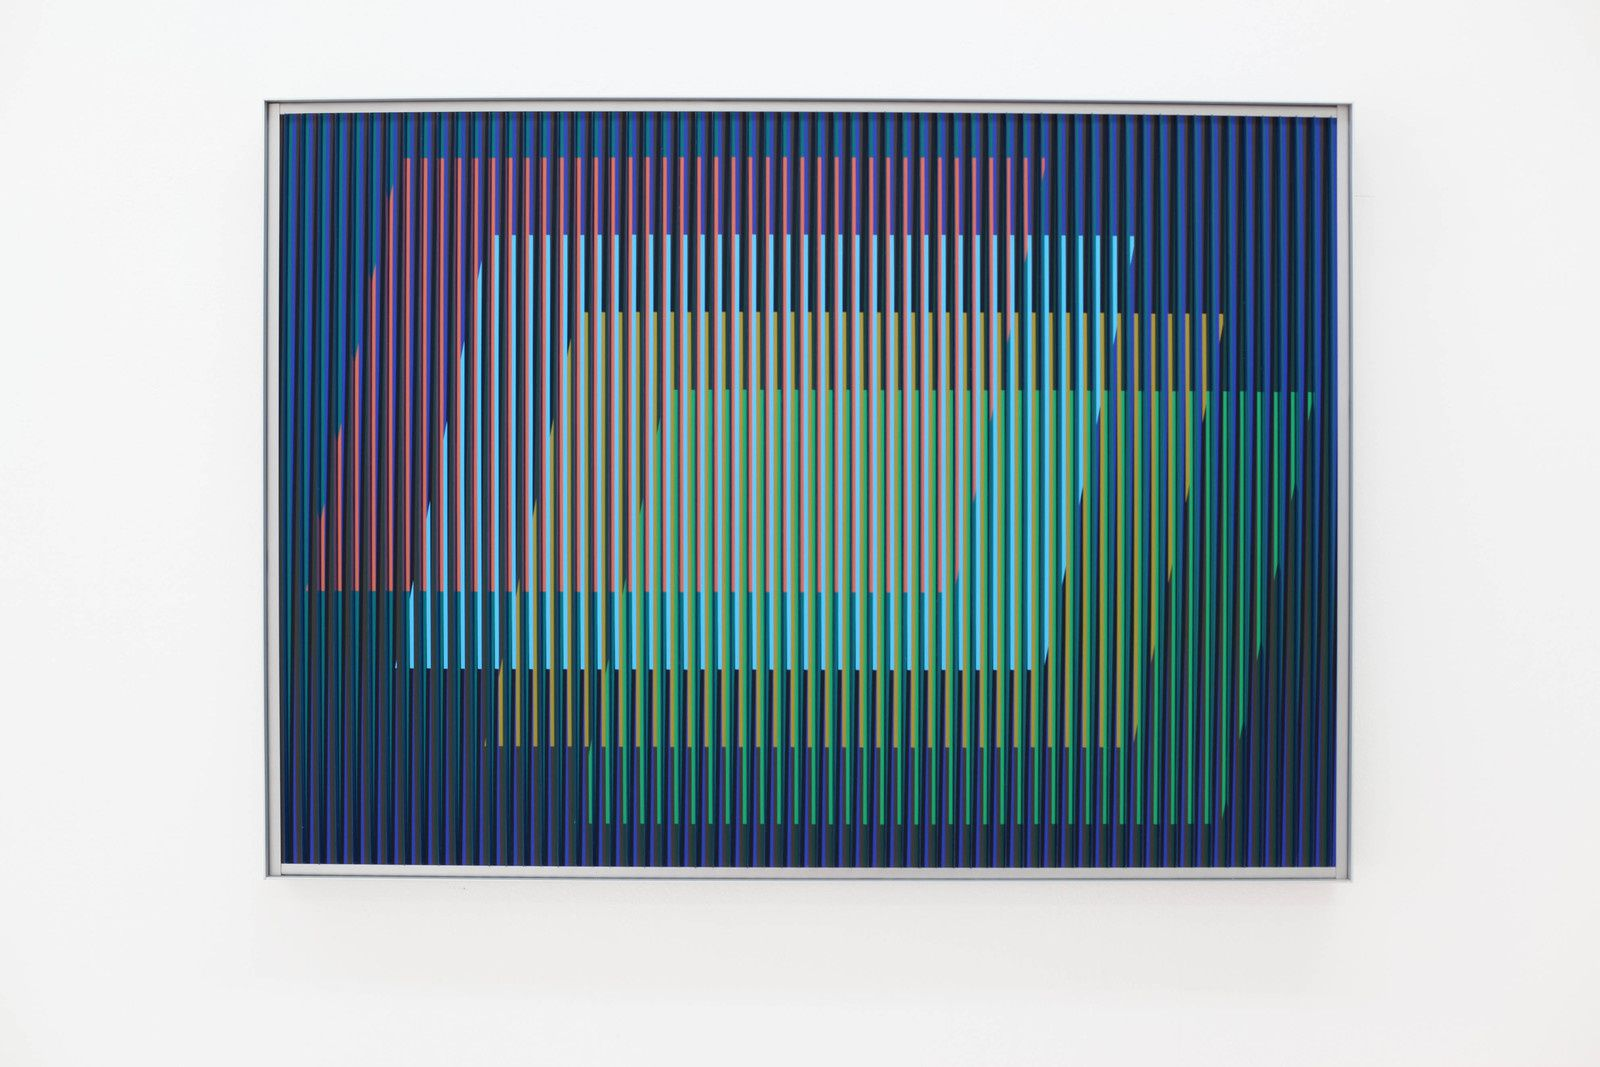 """Physichromie N°1882"", 2013 de Carlos CRUZ-DIEZ - Courtesy Galeie Denise René © Photo Éric Simon"